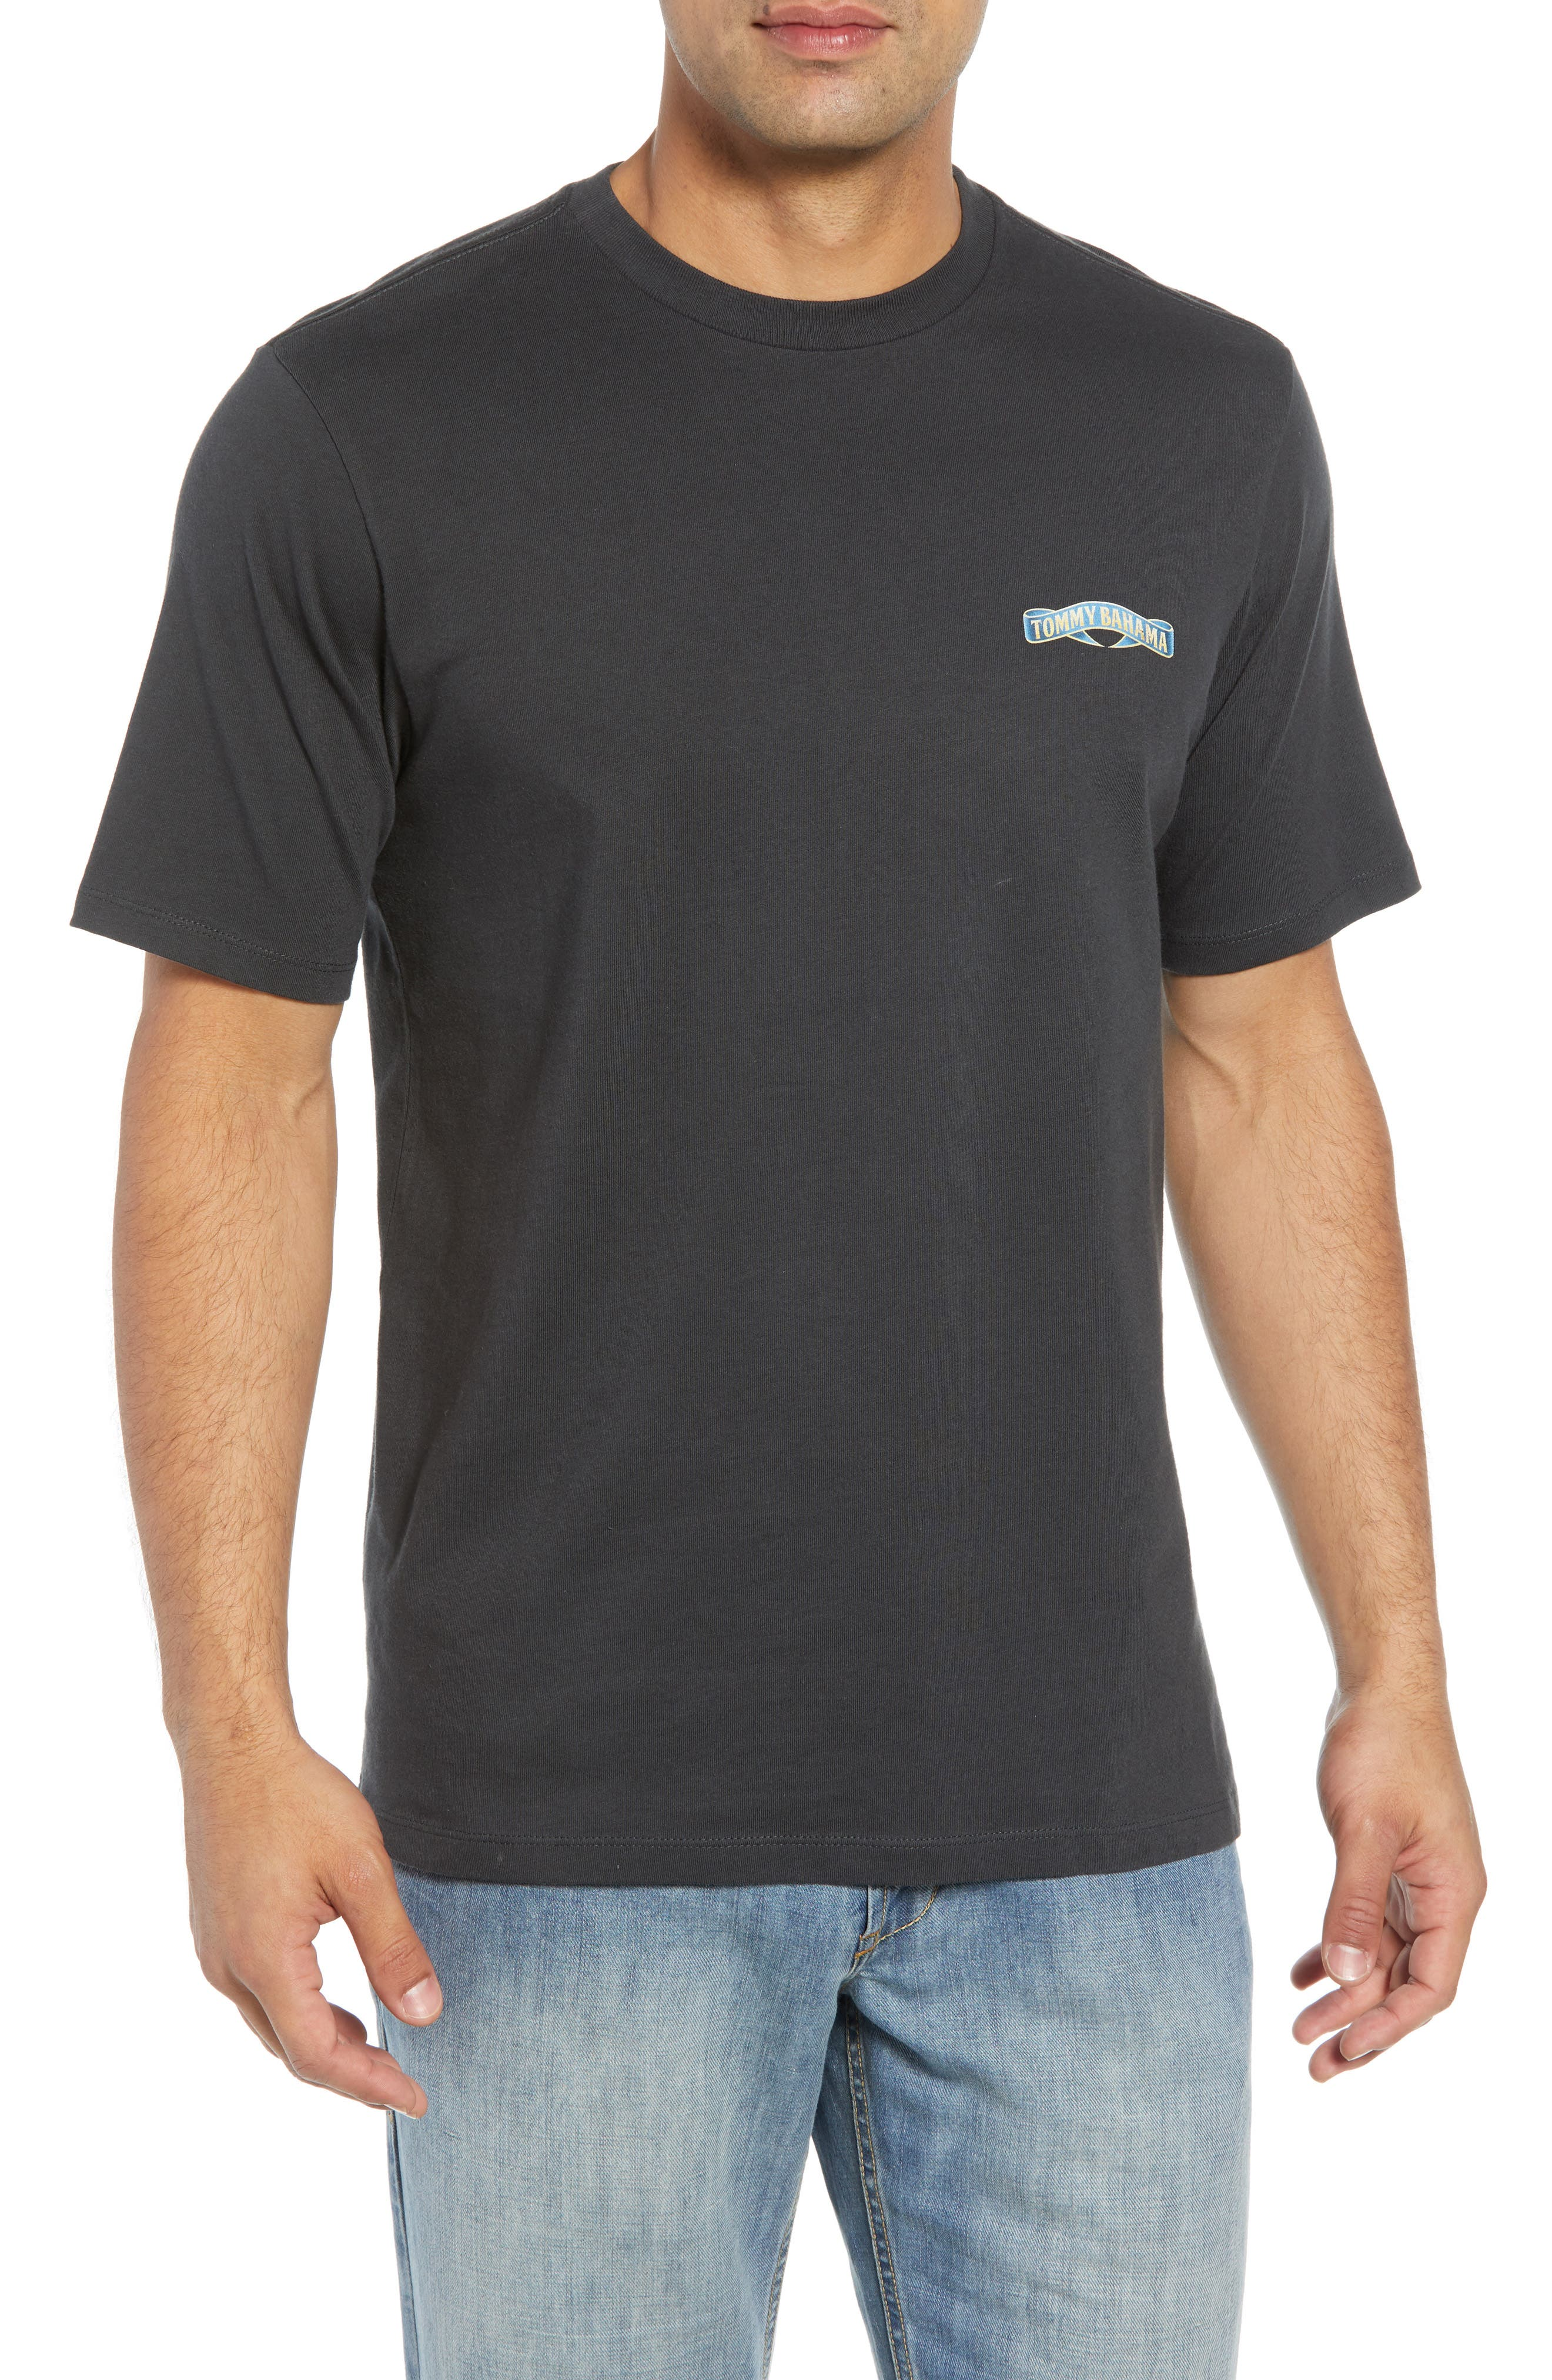 TOMMY BAHAMA Find your Hoppy Place T-Shirt, Main, color, 001